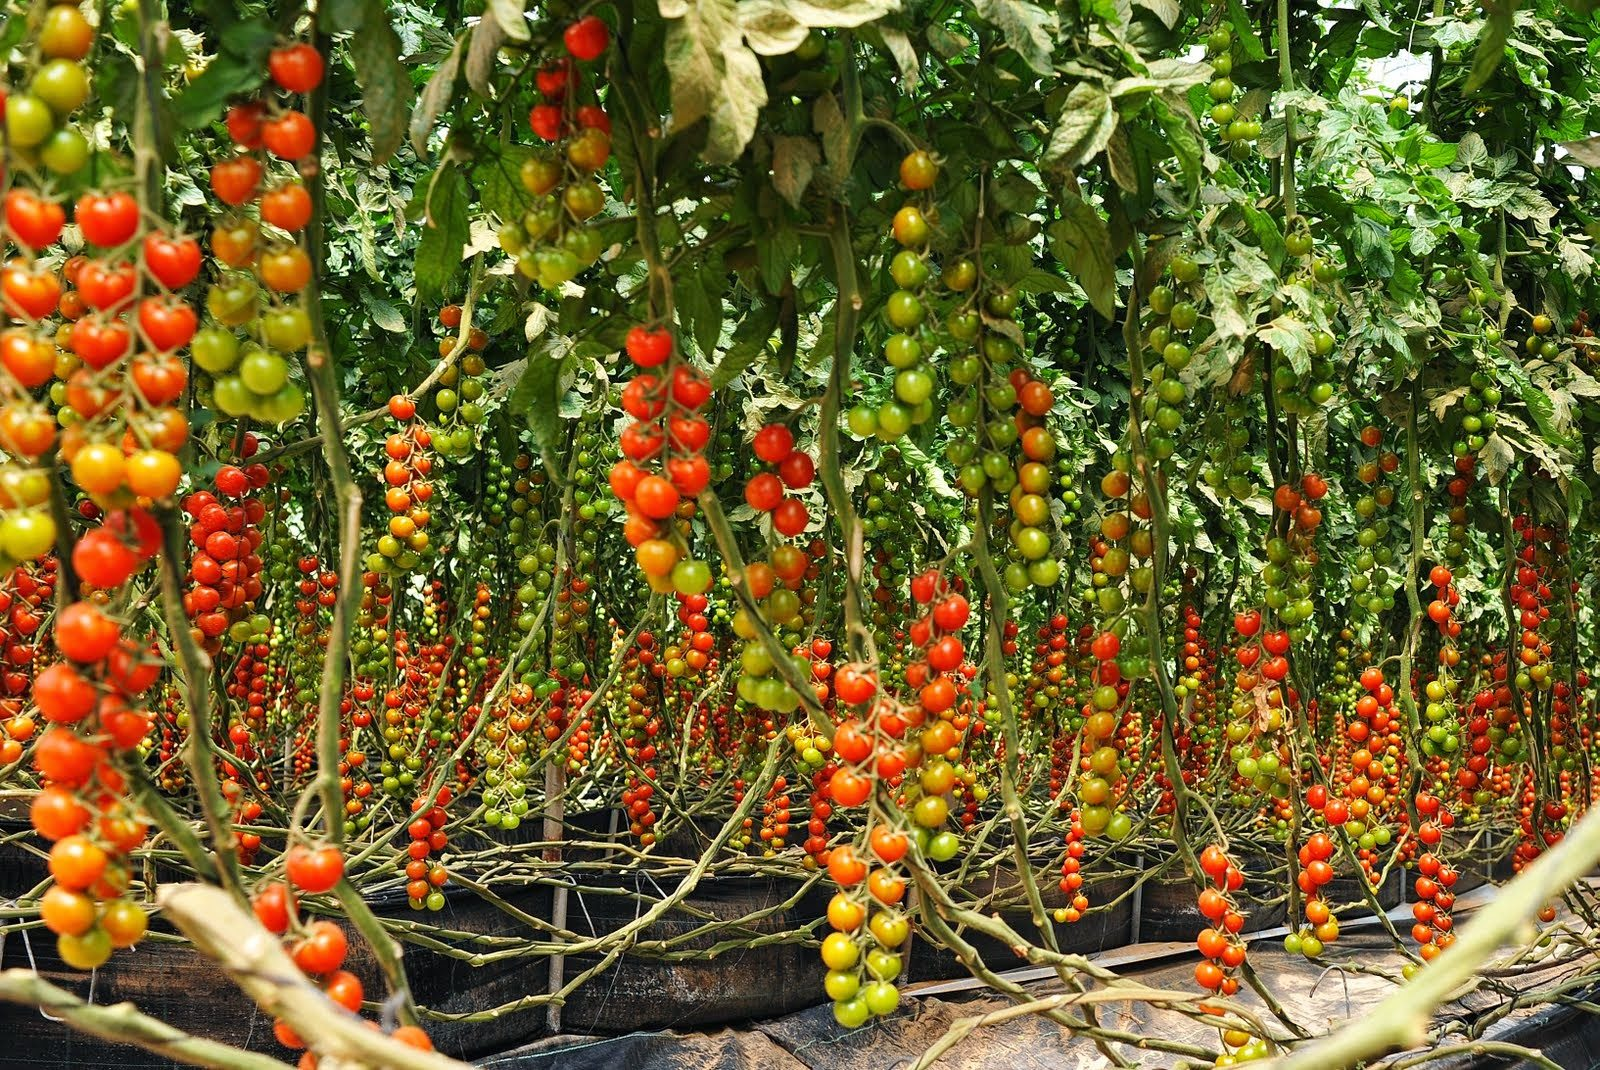 Easy Steps On How To Grow Tomatoes At Home